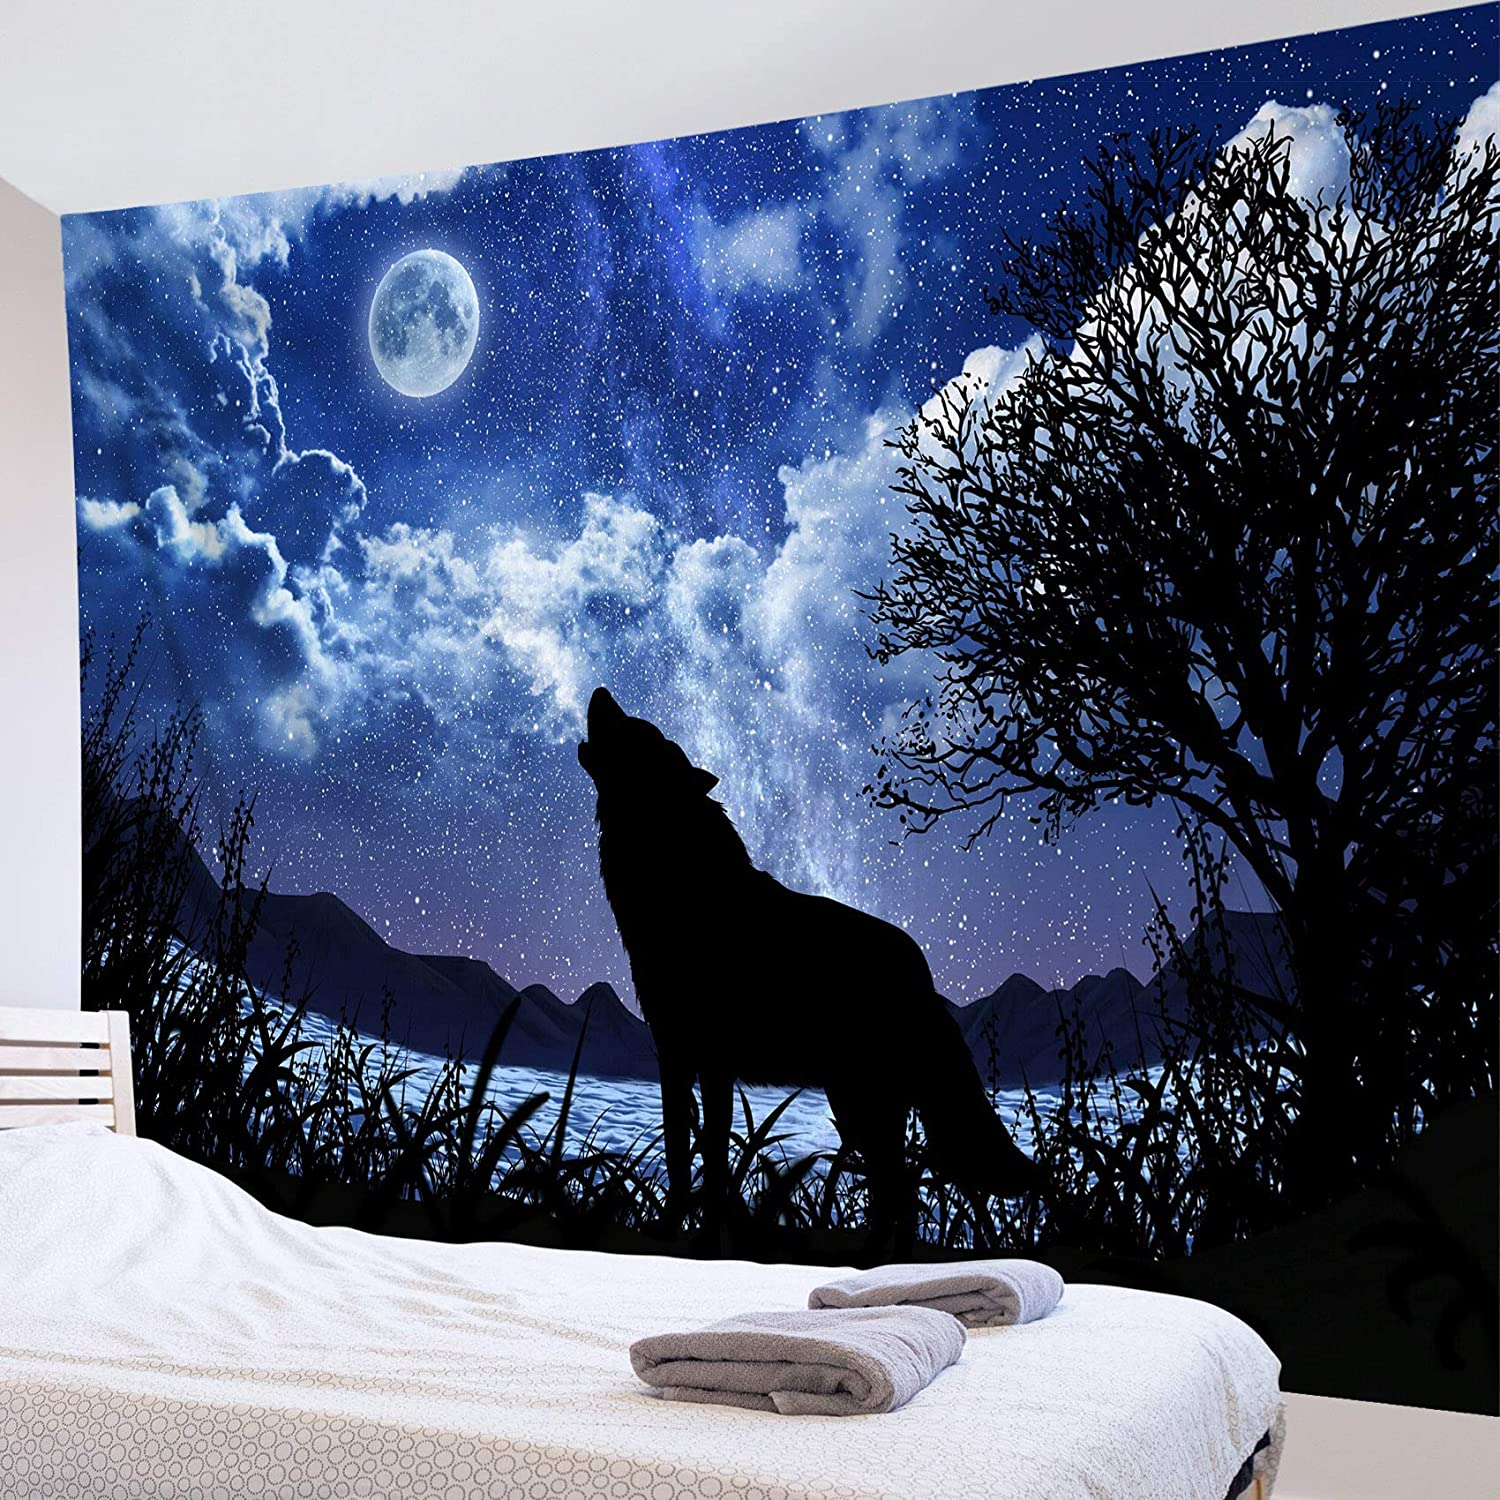 HVEST Wolf Tapestry Wall Hanging Night Starry Sky Tapestry Full Moon and Stars Tapestry Wild Animal Wall Tapestry for Bedroom Room Dorm Party Decor, 60Wx40H Inch